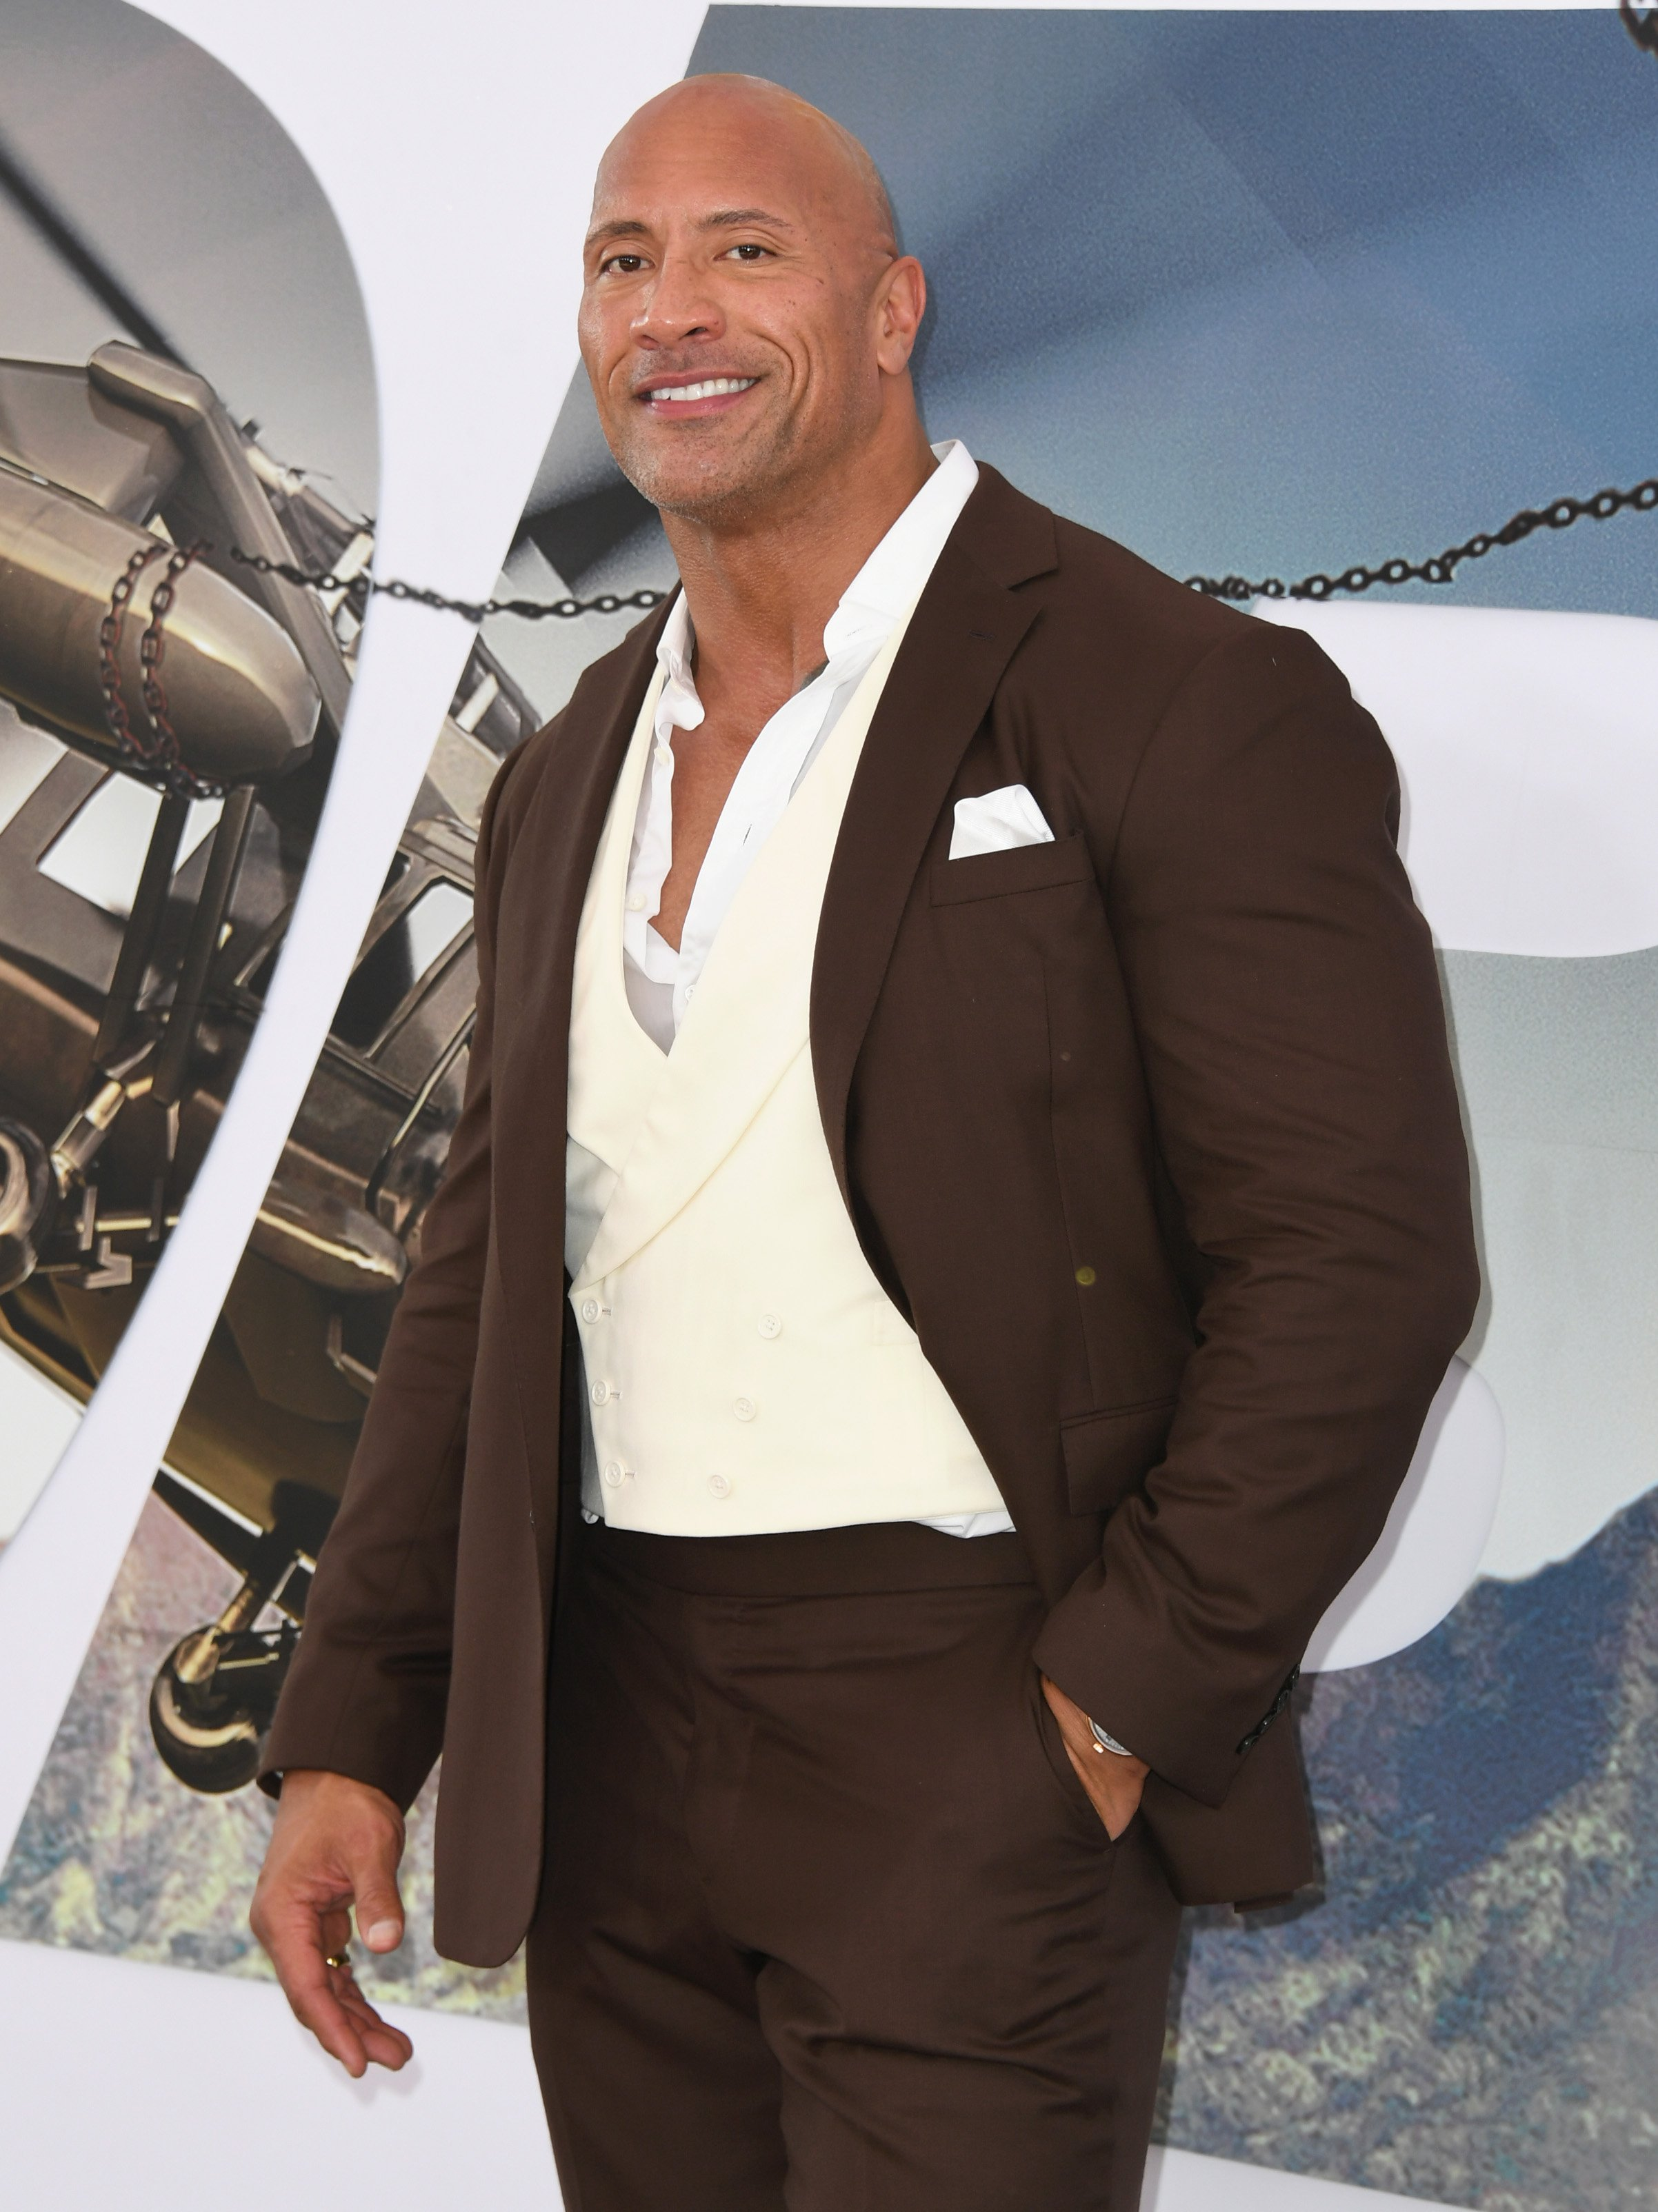 """Dwayne Johnson attends the premiere of """"Fast & Furious Presents: Hobbs & Shaw"""" in Hollywood on July 13, 2019 